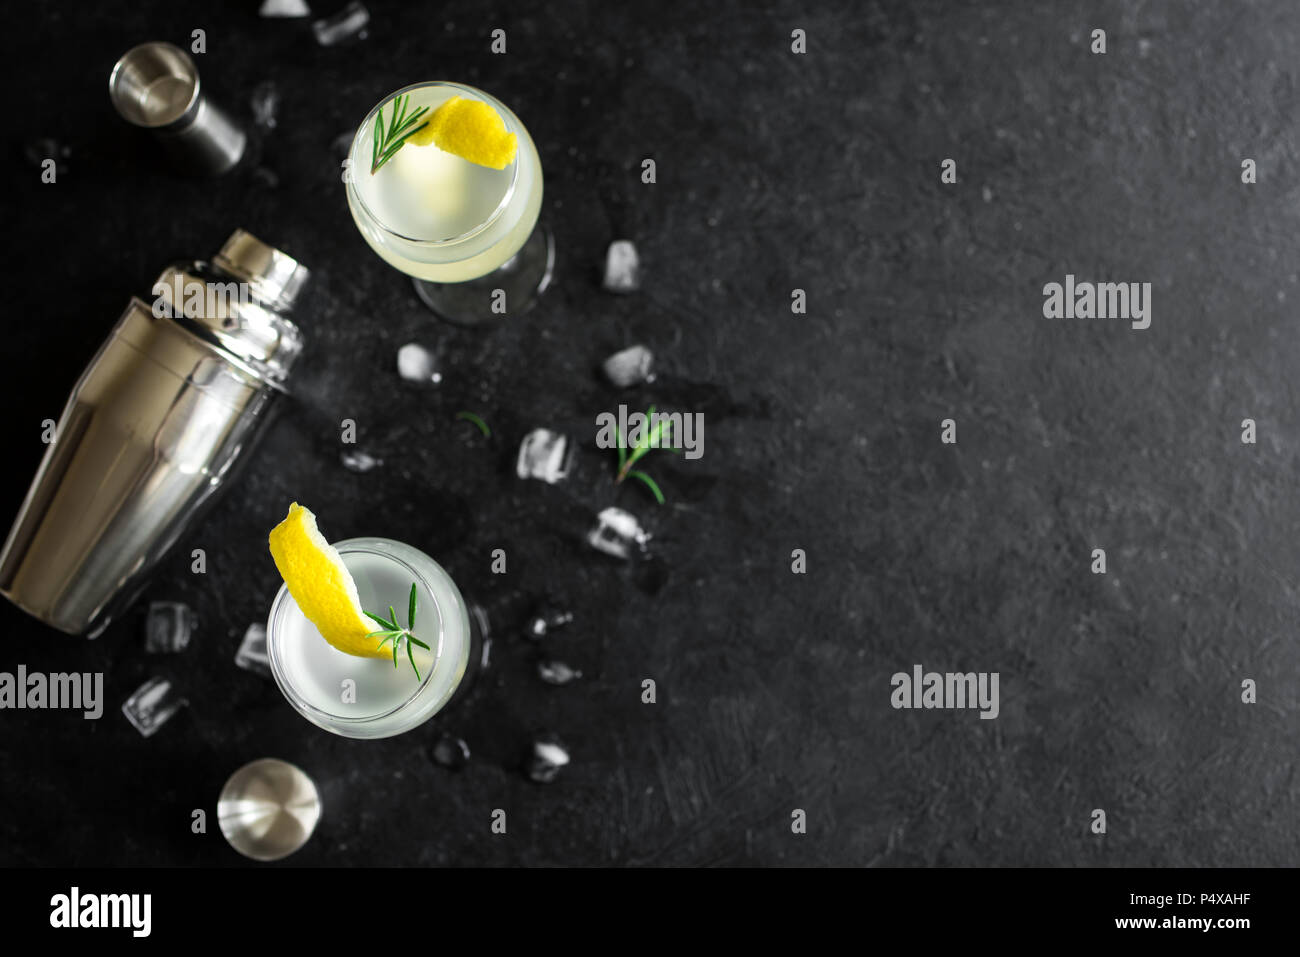 Alcohol Cocktail with lemon, rosemary and ice. Gin tonic fizz or gimlet cocktail on black background, copy space. - Stock Image